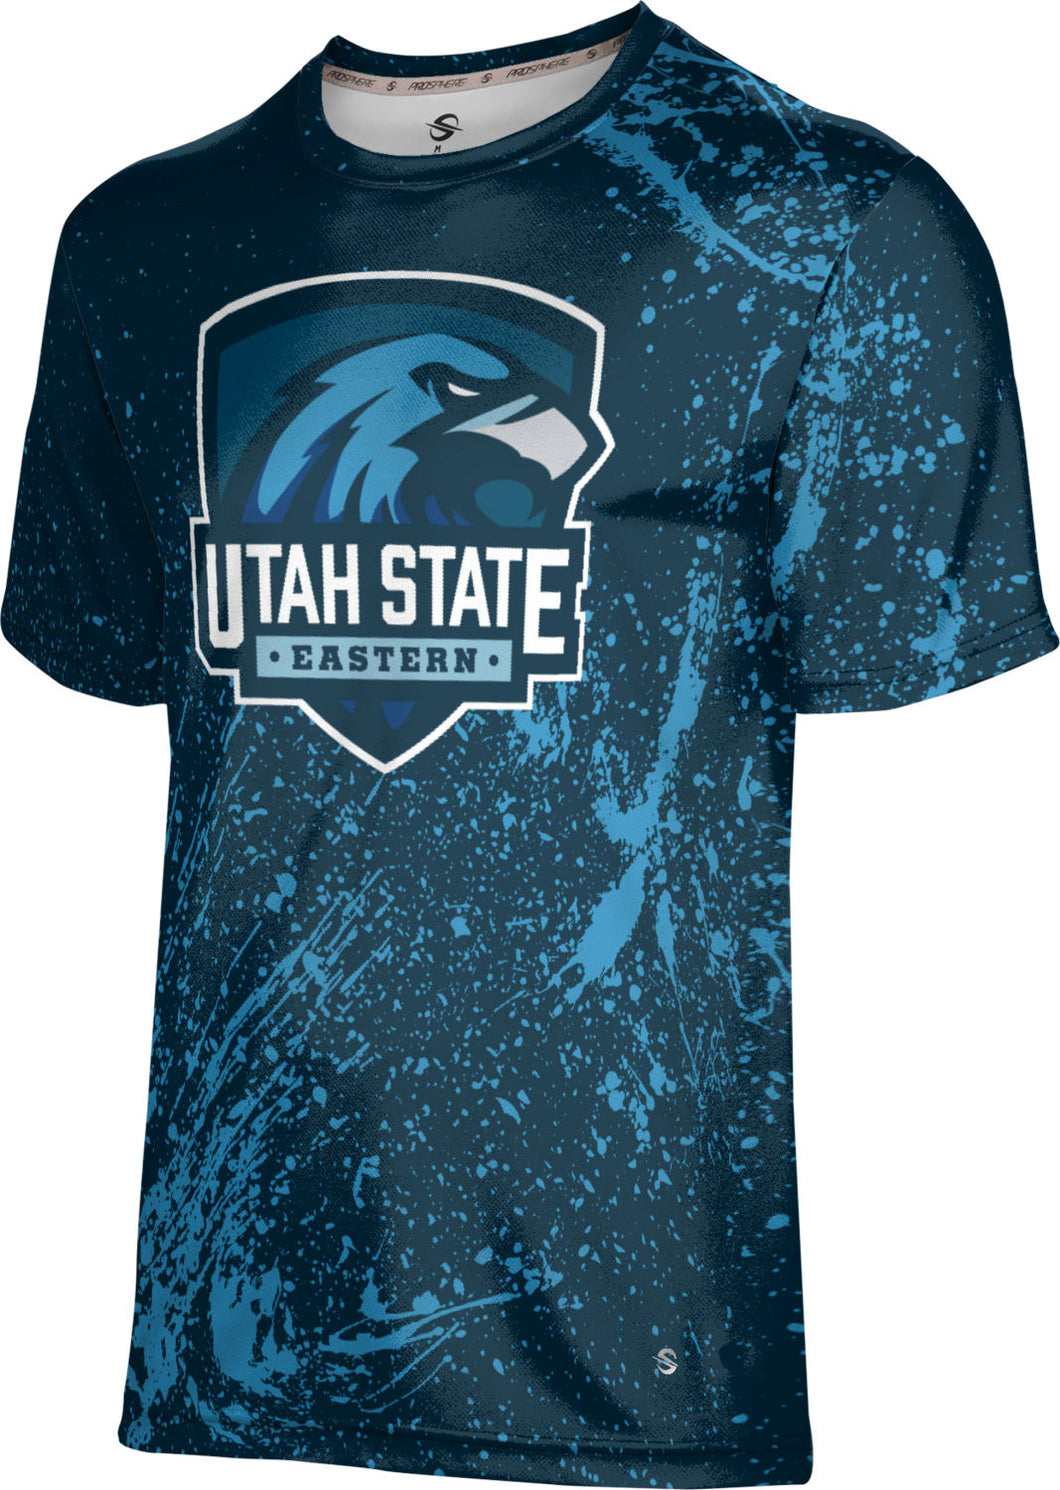 Utah State University Eastern: Men's T-shirt - Topography